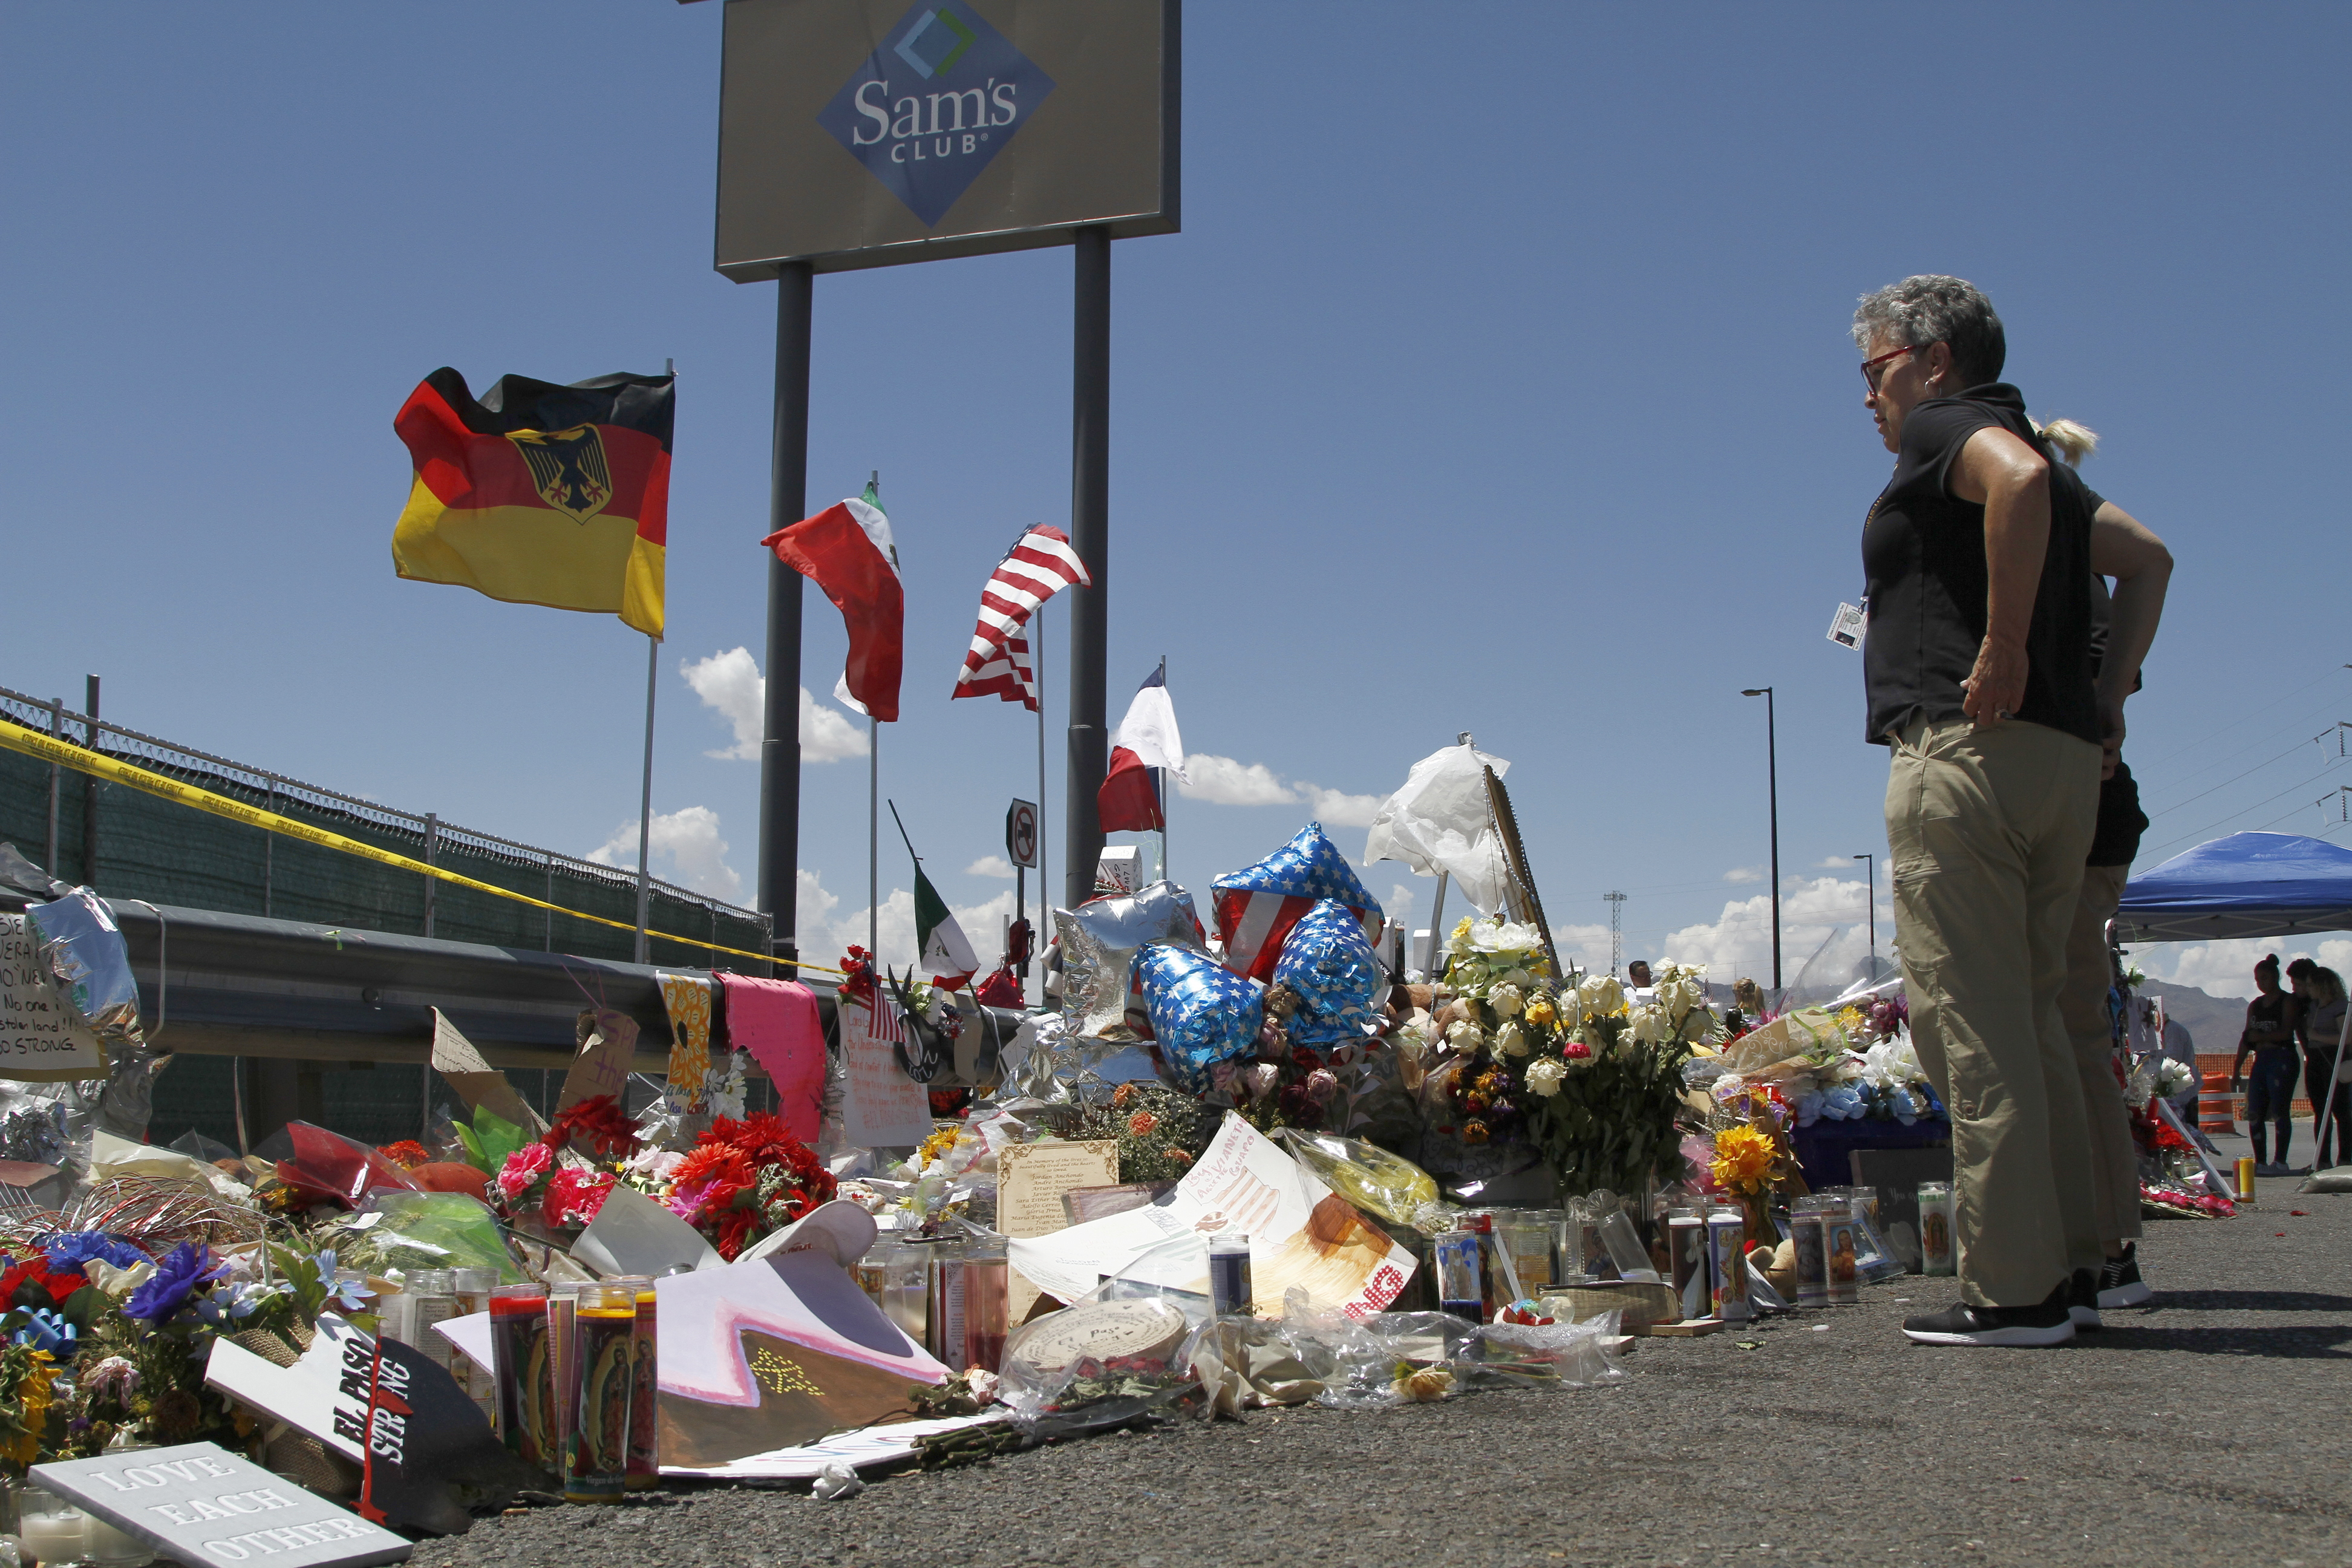 El Paso shooting suspect says AK-style gun came from Romania